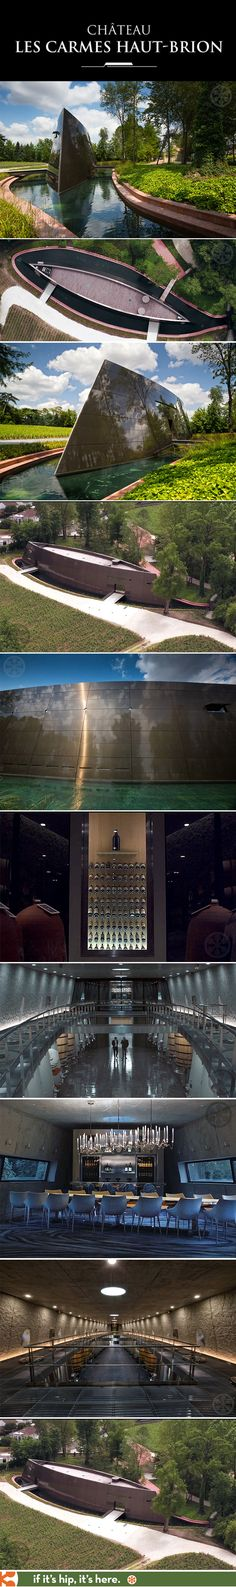 Designer Philippe Starck and architect Luc Arsène-Henry have transformed the Château Les Carmes Haut-Brion into a wild new winery. The modern facility combines tradition and technology with their newly designed vat room, ageing cellar and reception area.